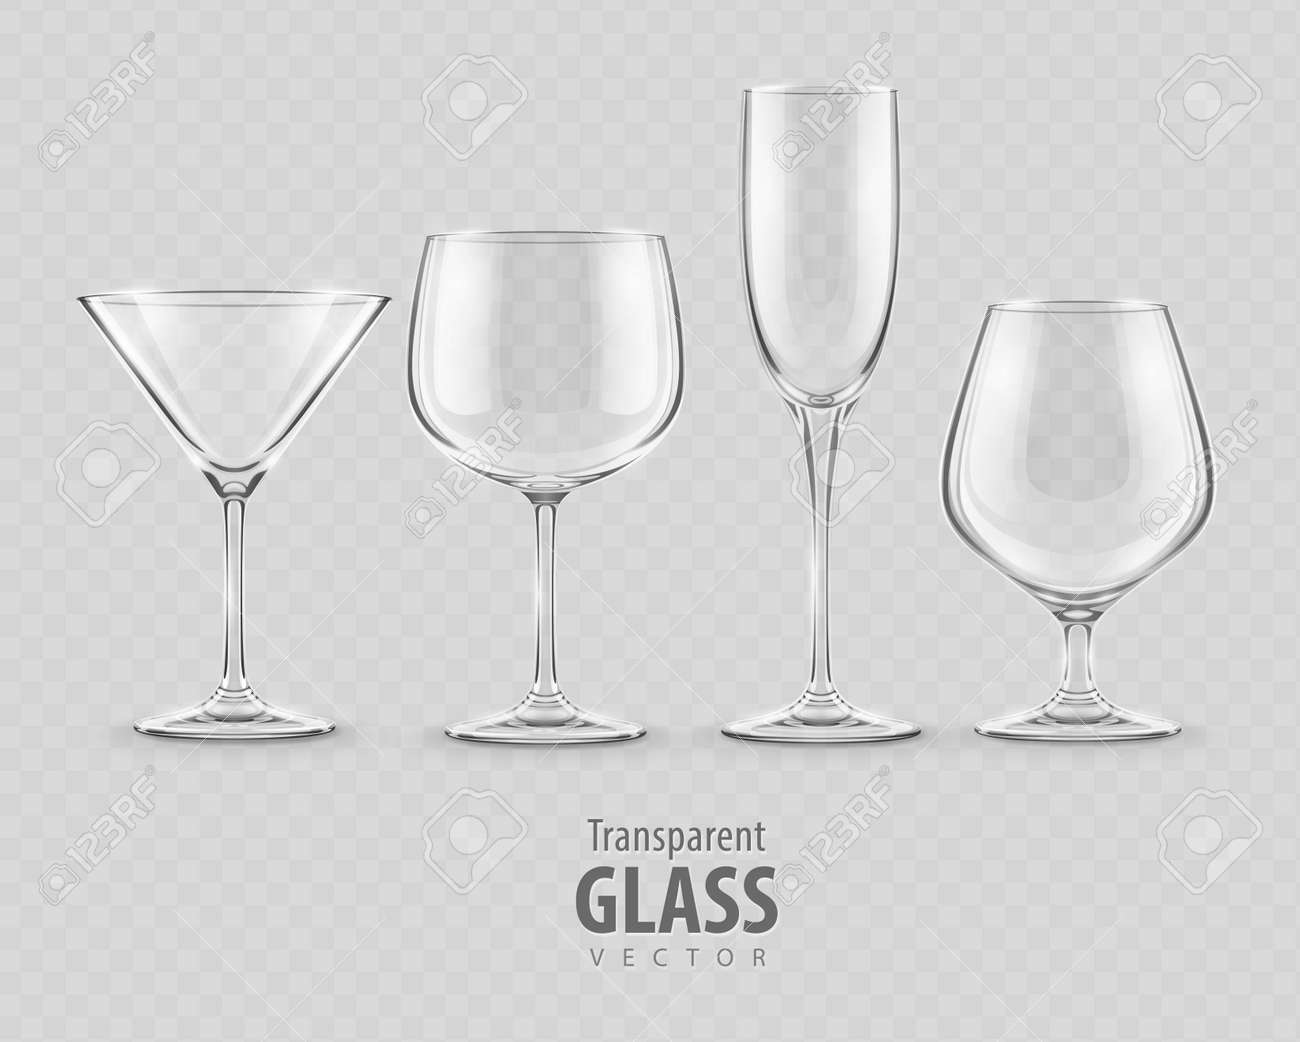 set of transparent glass goblets - EPS10 vector illustration Stock Vector - 21479502